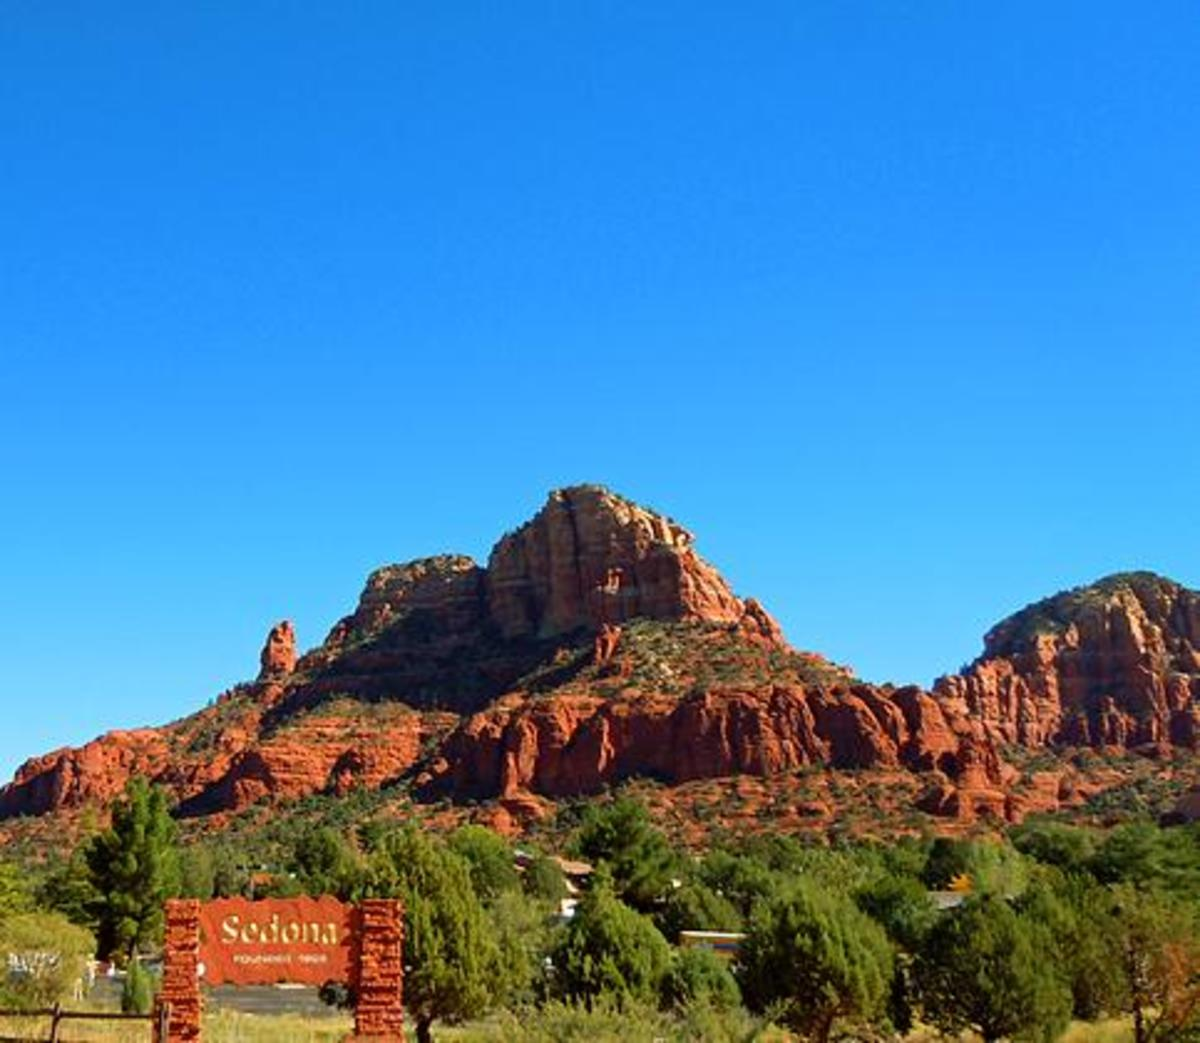 RV Travel, A Drive from Mesa to Sedona Arizona with photos.